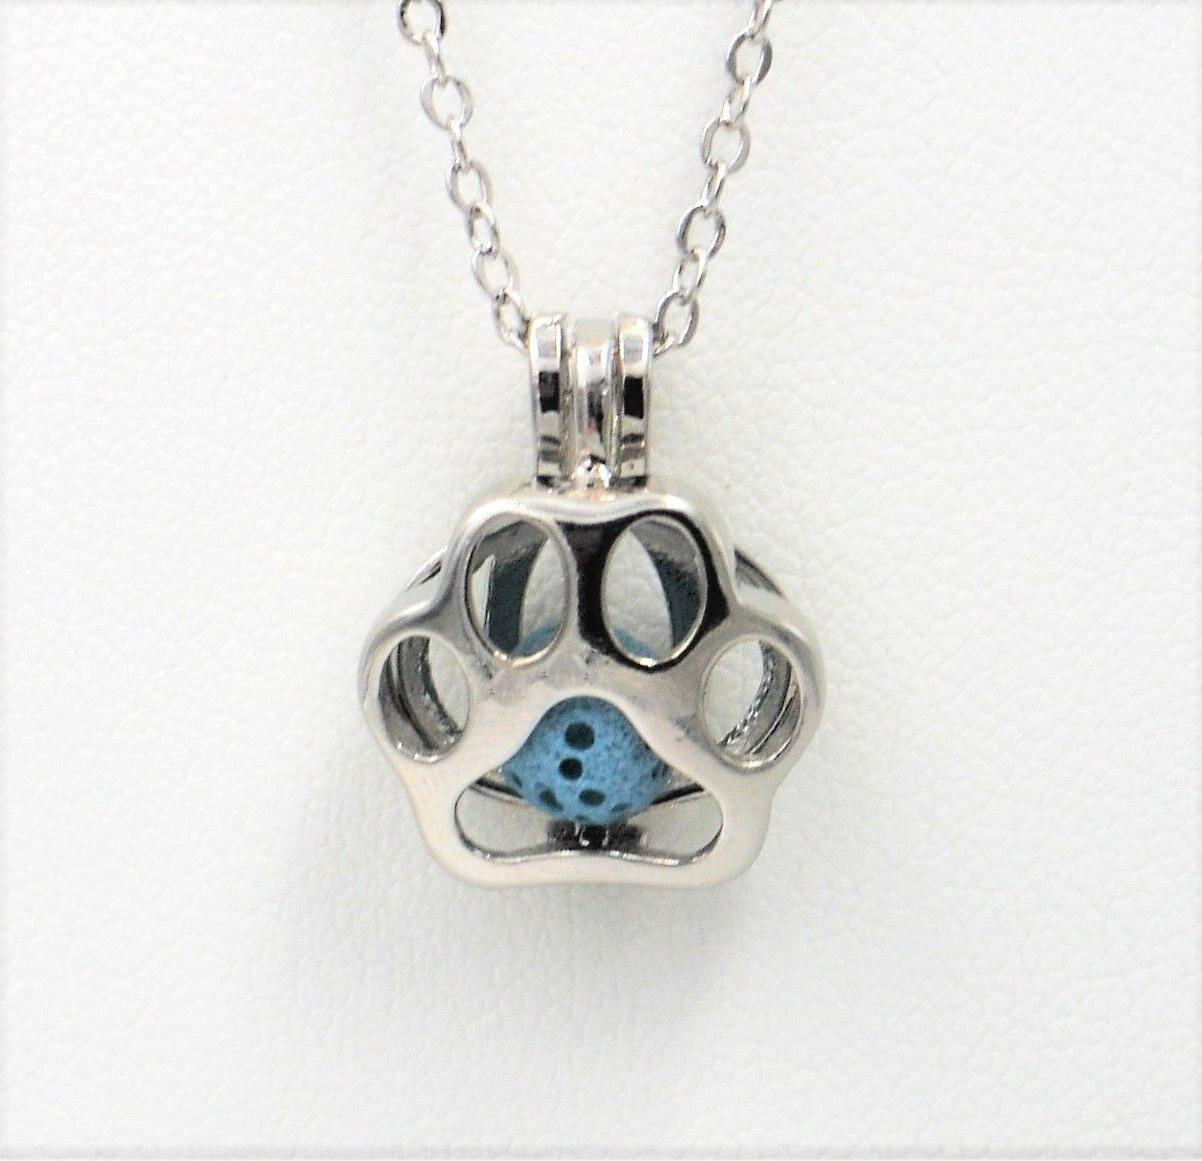 Dog Aromatherapy Diffuser with stones!